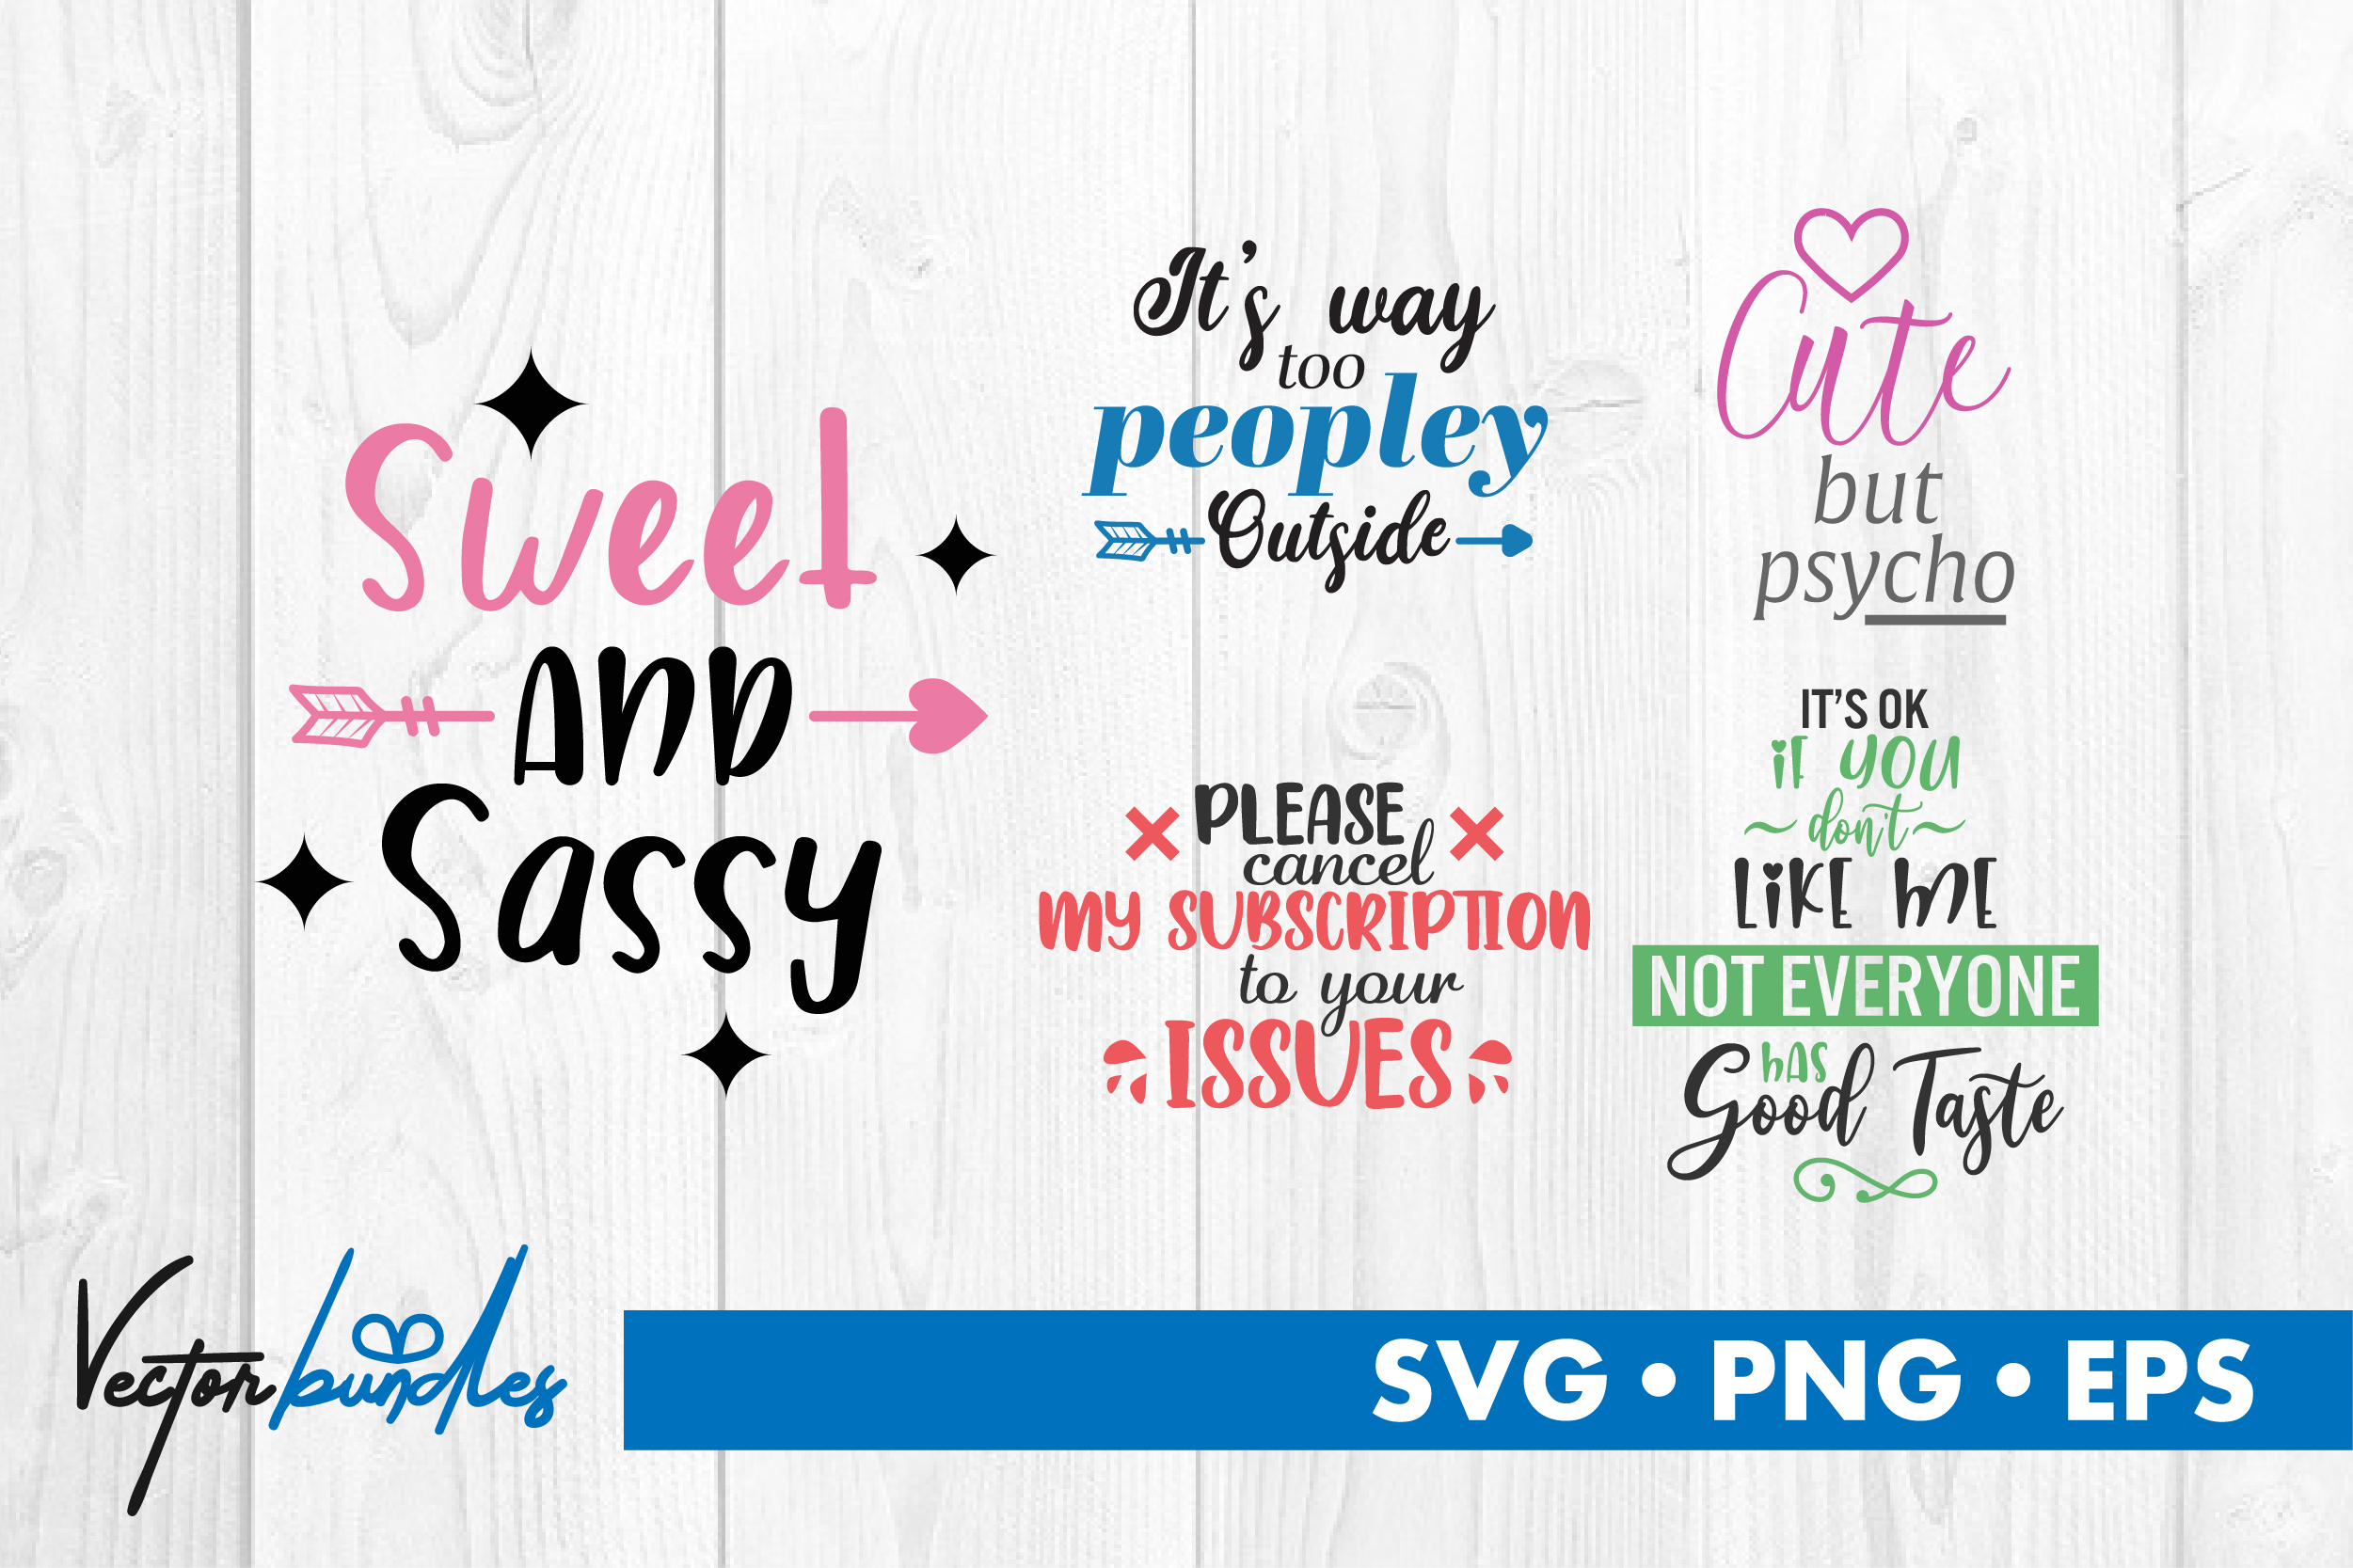 Download Free Sassy Quotes Graphic By Vectorbundles Creative Fabrica for Cricut Explore, Silhouette and other cutting machines.